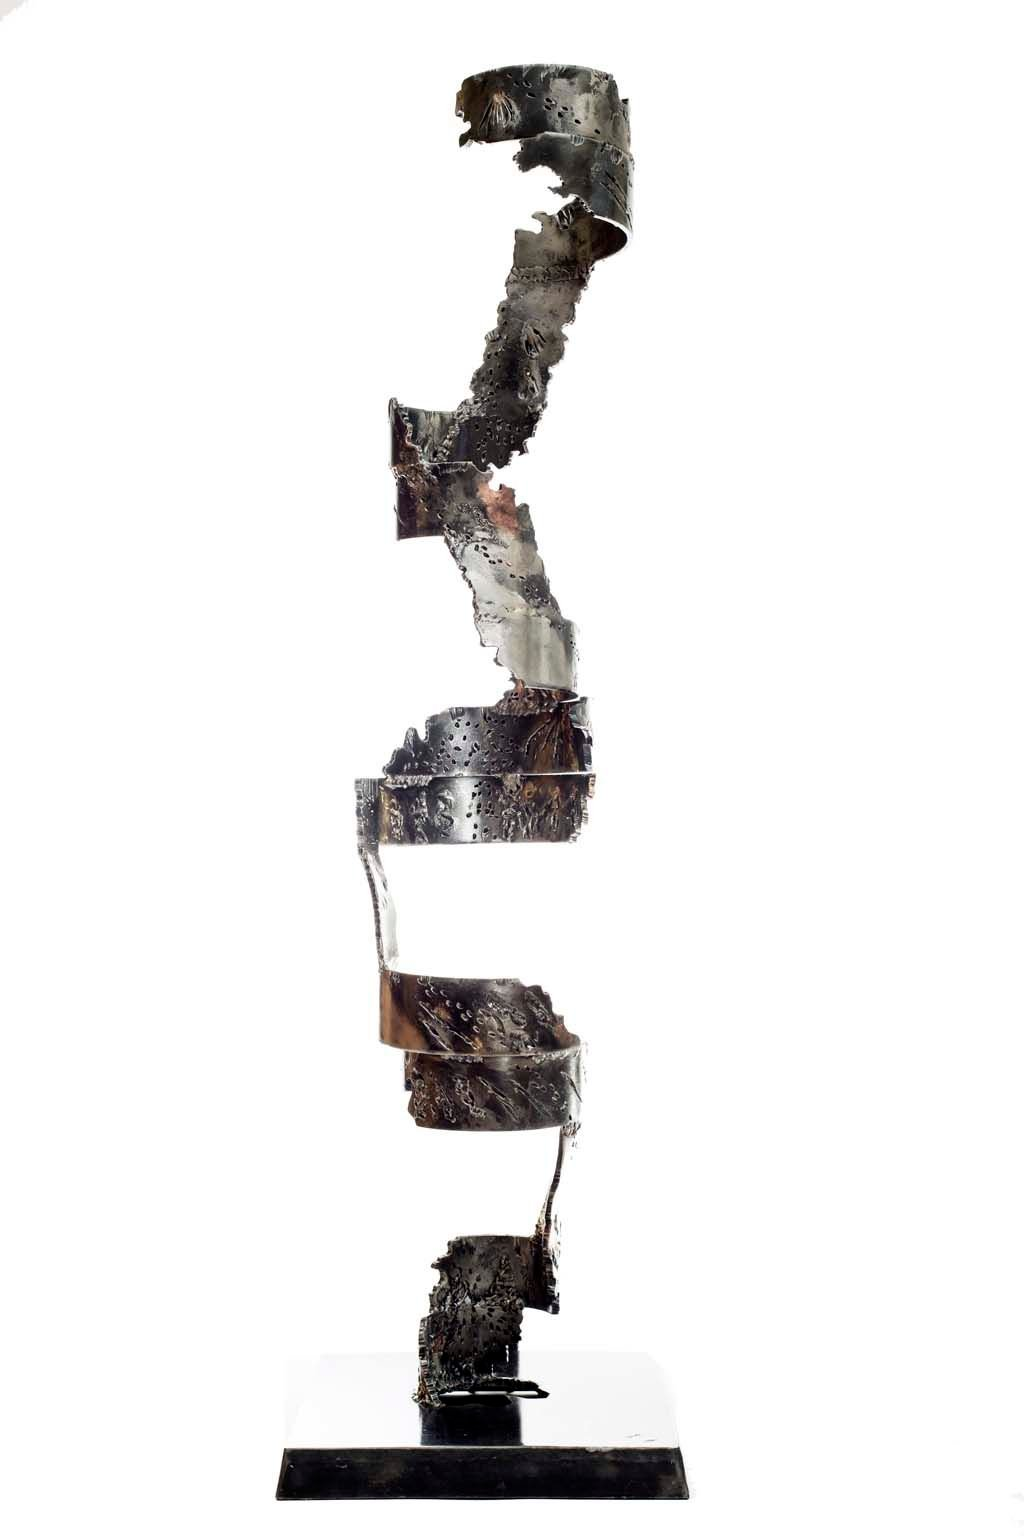 Insights IV | 2013 | Iron & brass sculpture of the Israeli artist, sculptor Rami Ater